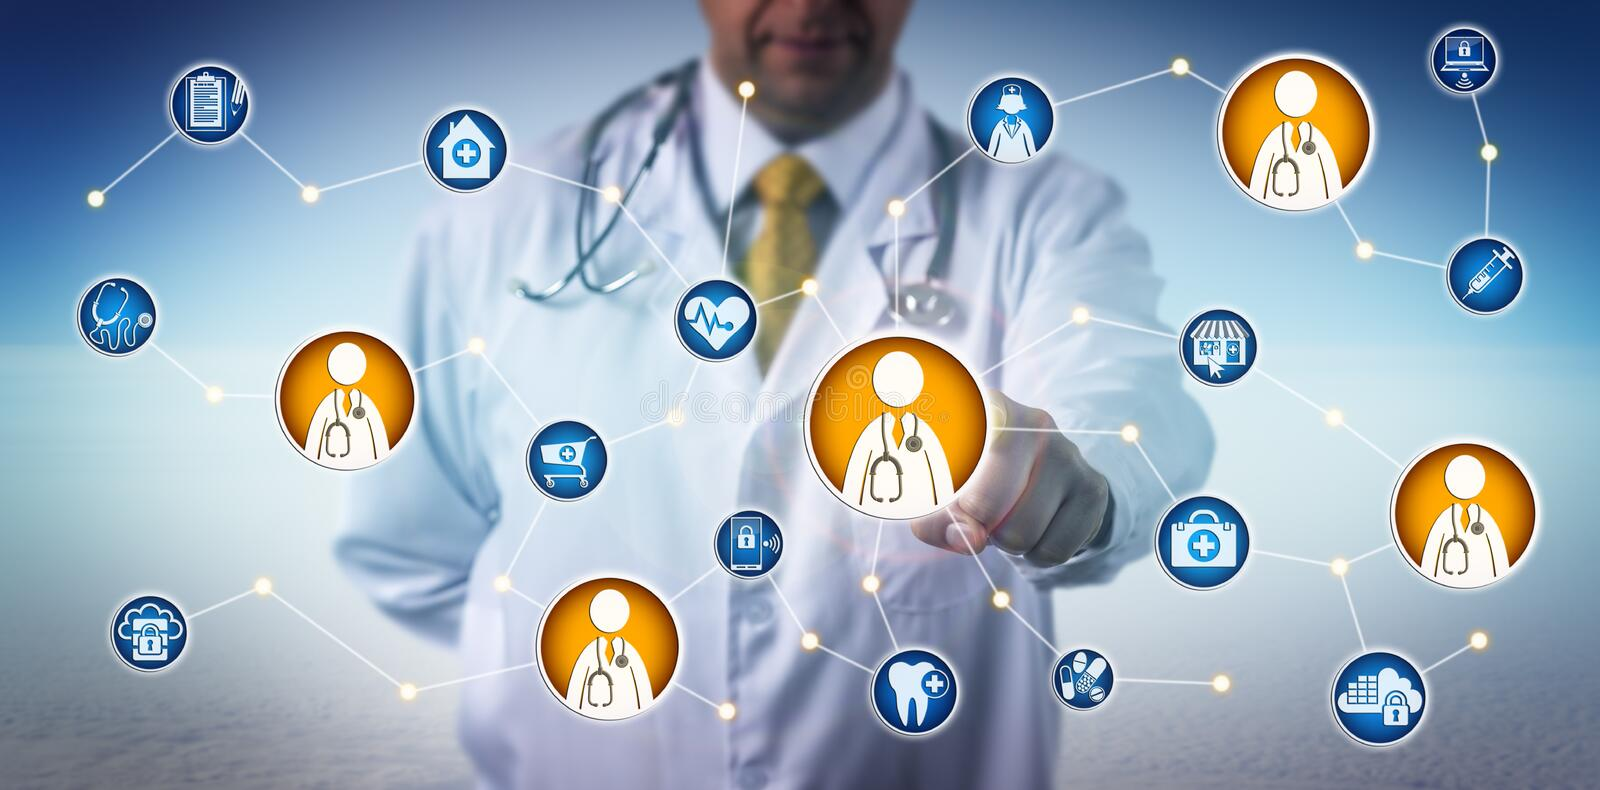 Doctor Consulting Via Clinician-To-Clinician Net royalty free stock photo